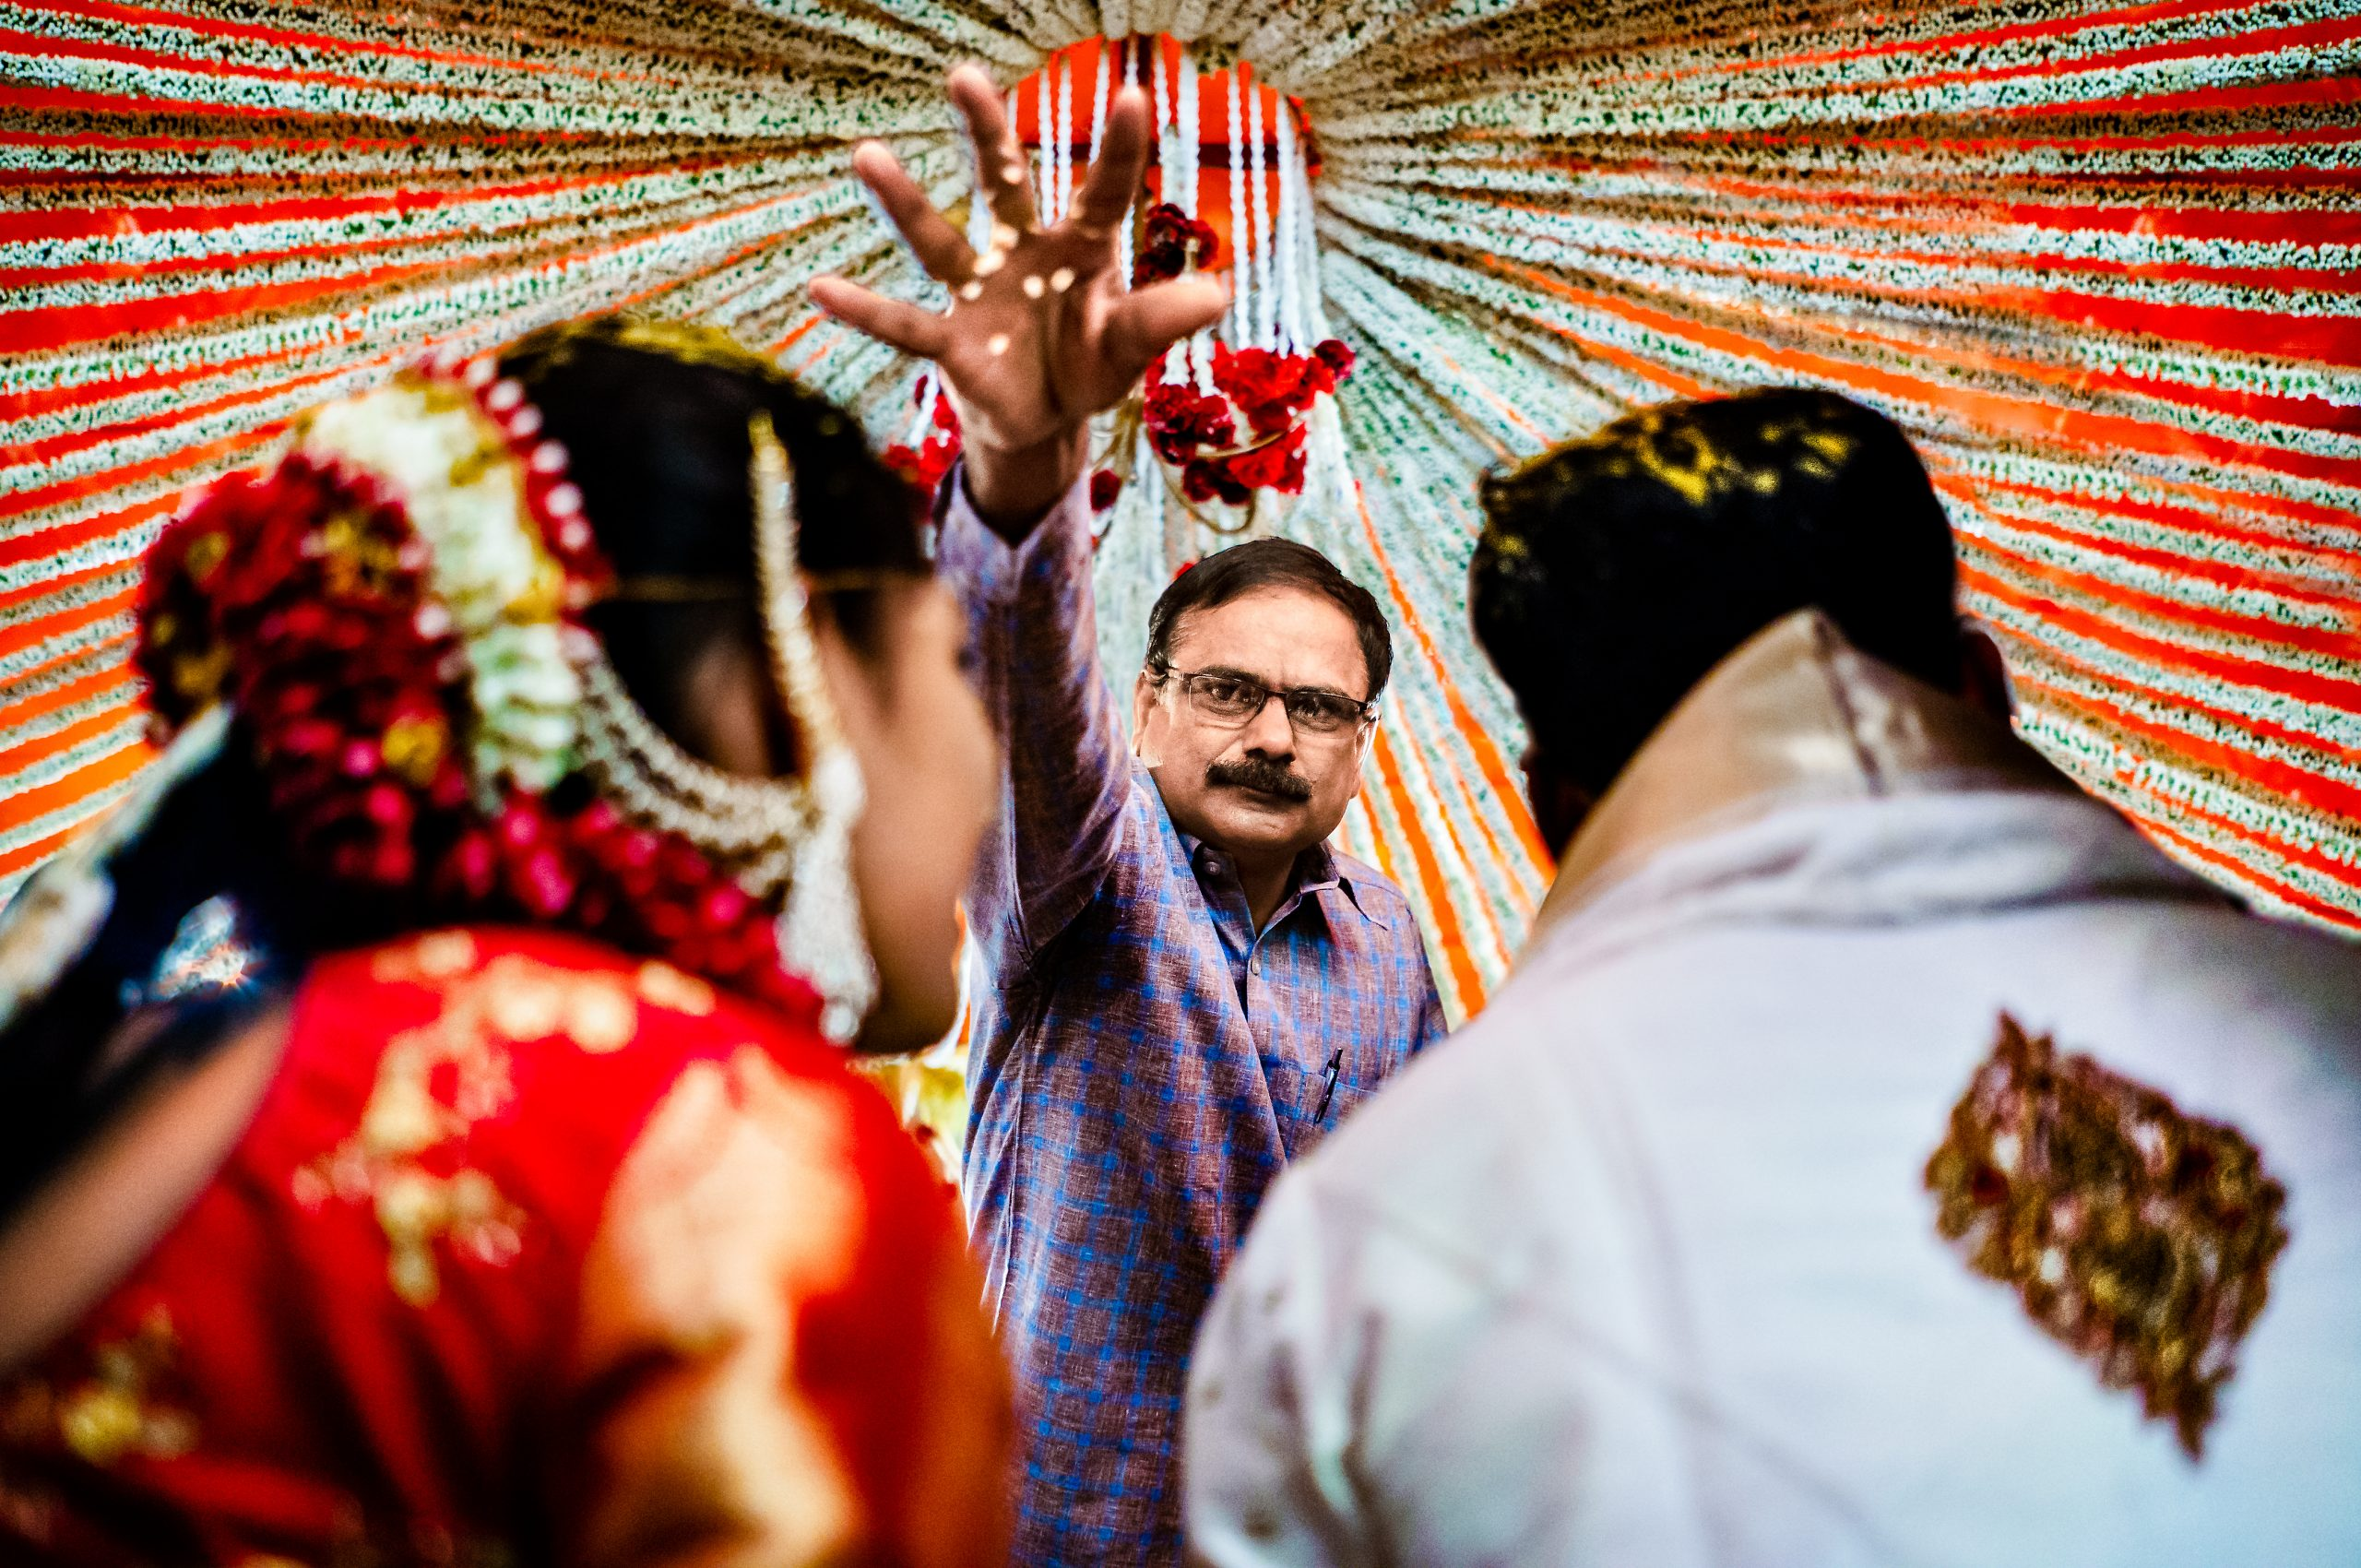 Man sprinkles material on bride and groom during an Indian wedding ceremony